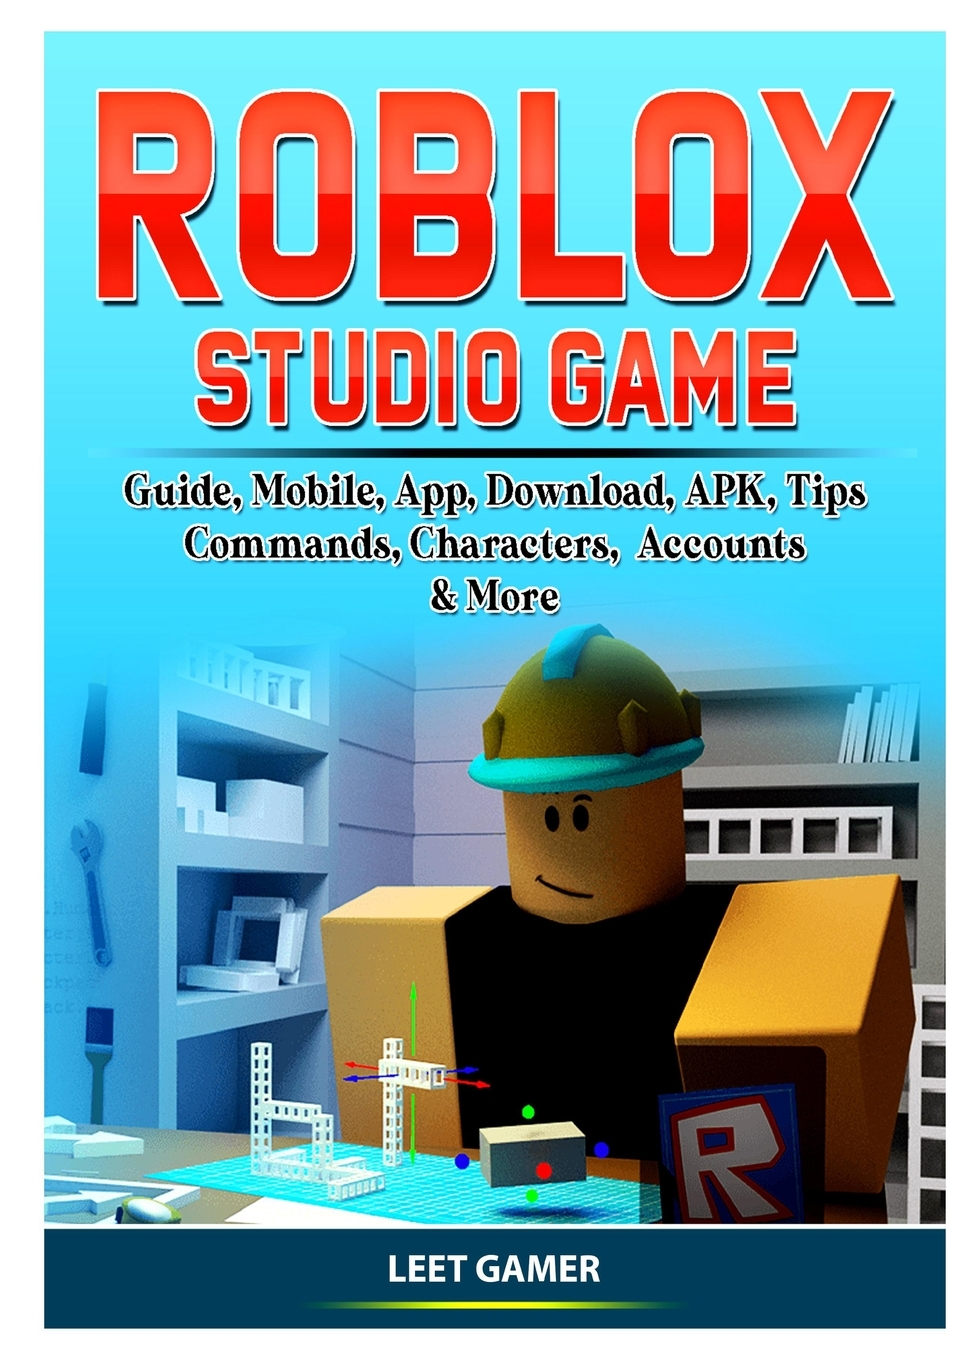 Get Free Robux Tips New 2019 Free New Version Descargar Roblox Studio Game Guide Mobile App Download Apk Tips Commands Characters Accounts More Paperback Walmart Com Walmart Com